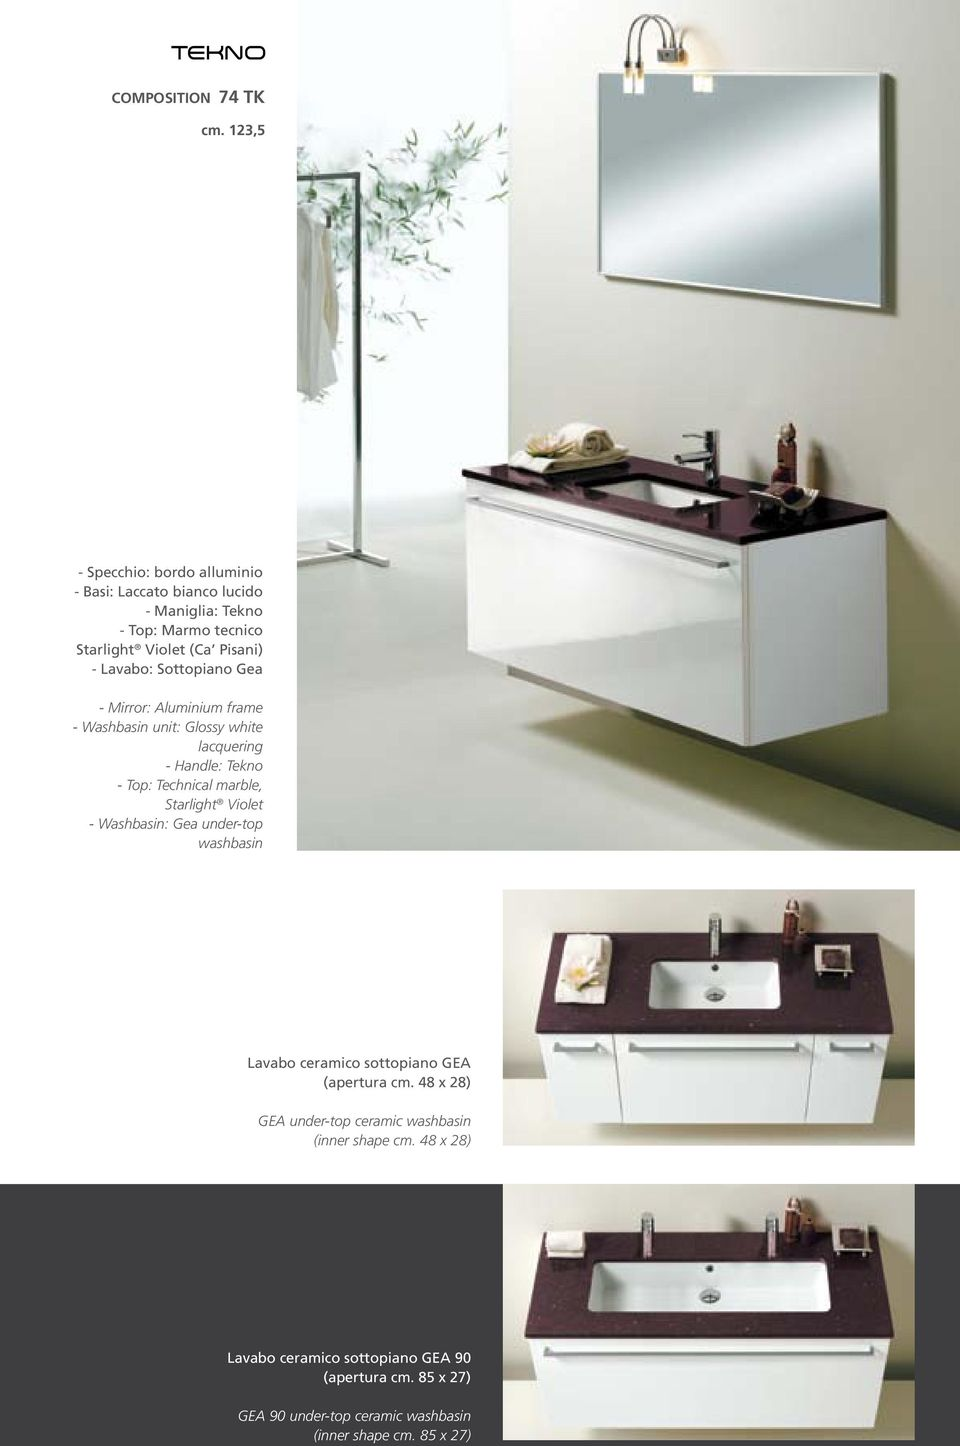 Sottopiano Gea - Mirror: Aluminium frame - Washbasin unit: Glossy white lacquering - Handle: Tekno - Top: Technical marble, Starlight Violet -